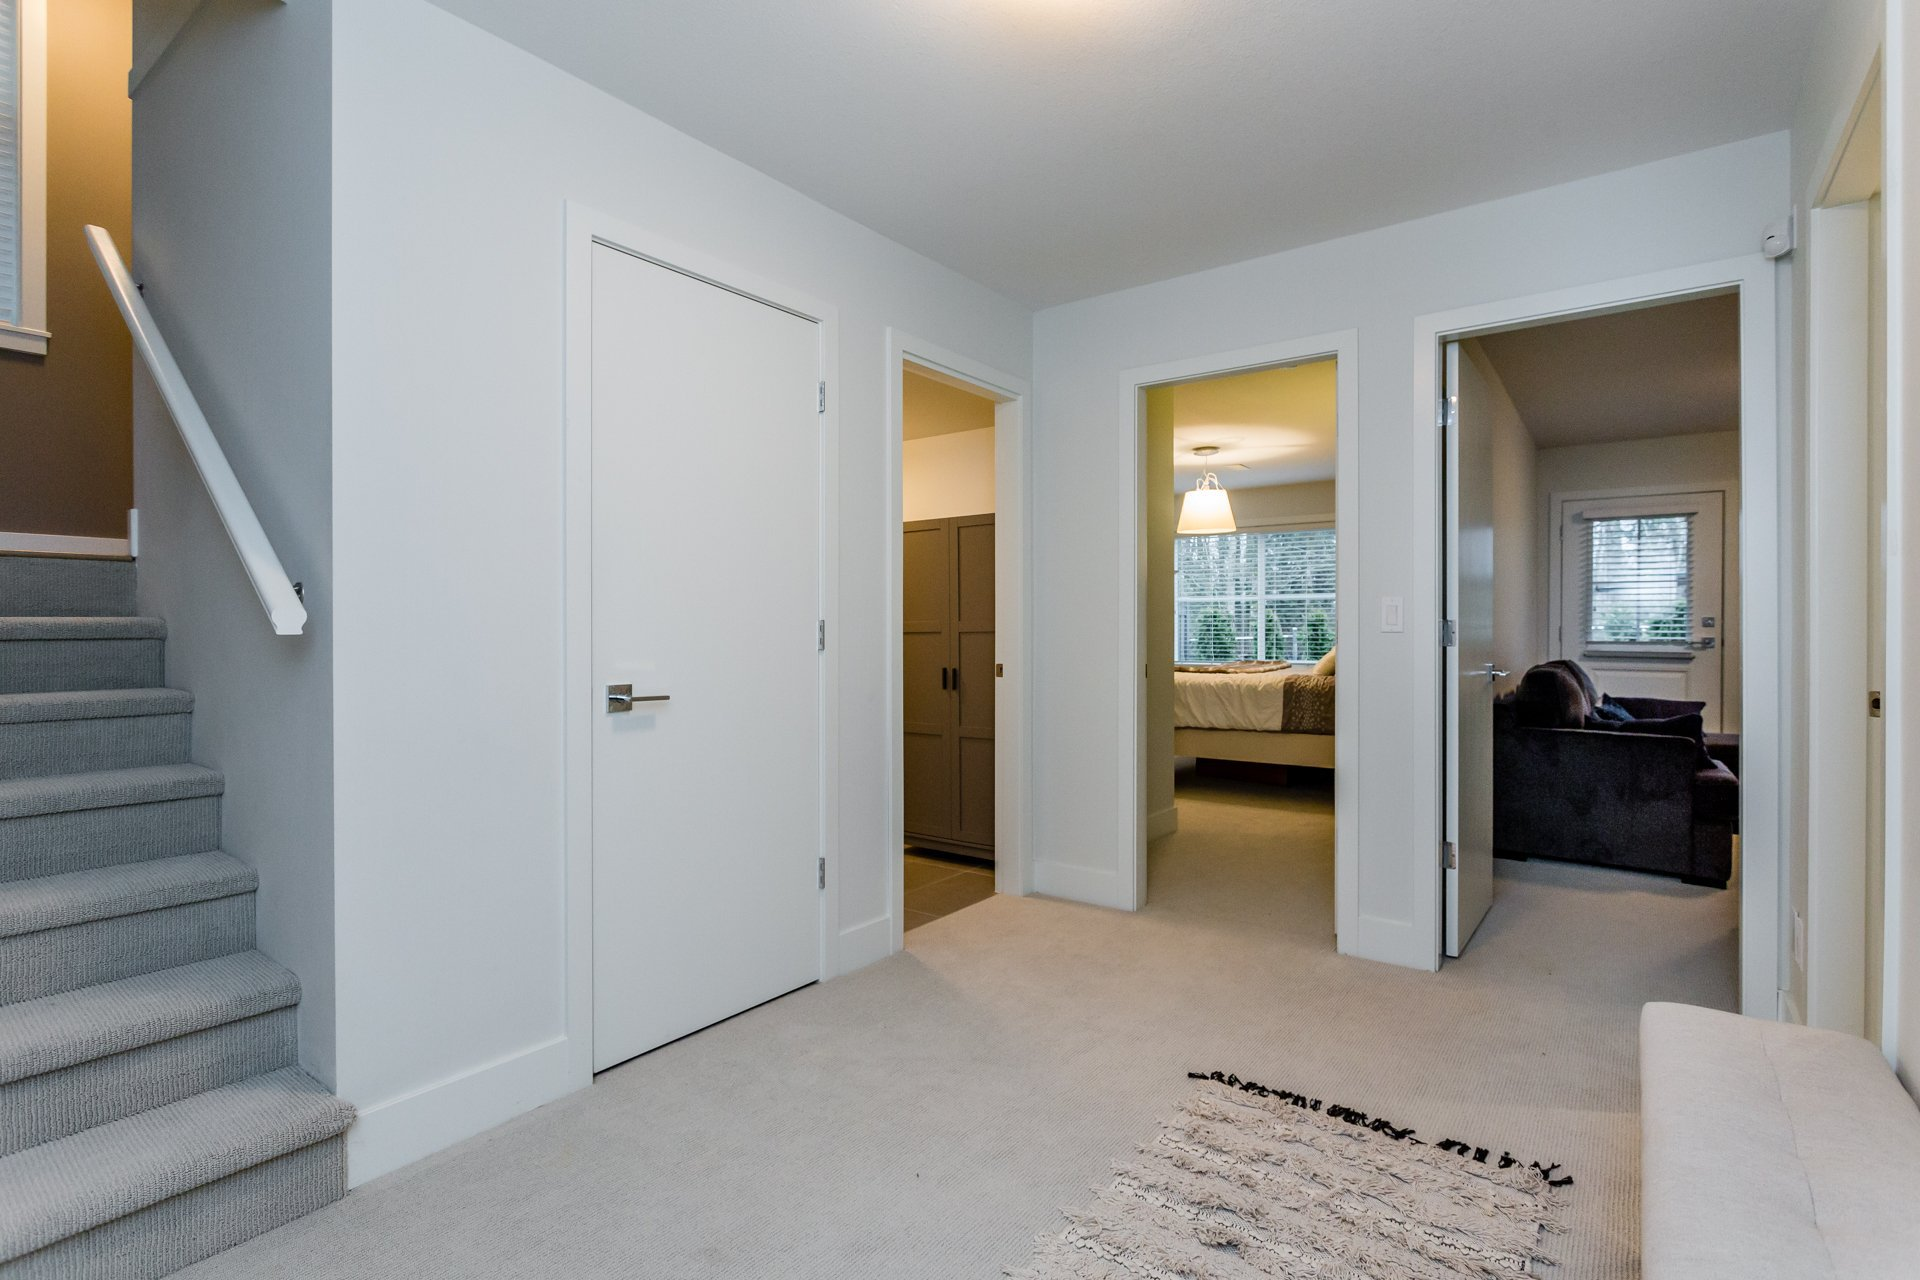 """Photo 34: Photos: 8 8217 204B Street in Langley: Willoughby Heights Townhouse for sale in """"EVERLY GREEN"""" : MLS®# R2236678"""